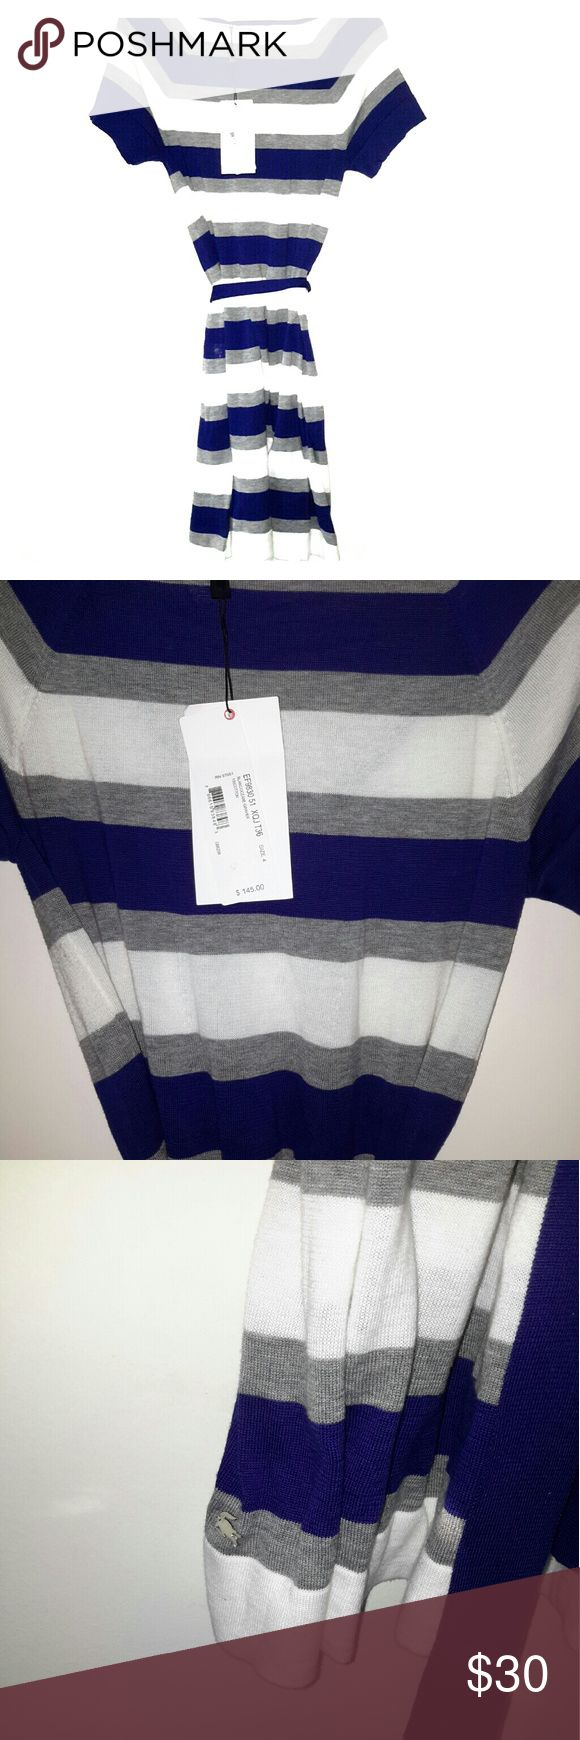 La Coste bold stripe light weight sweater dress be Women's Bold Stripe Sweater Dress. Any figure looks its best in this pima cotton sweater dress, an elegant yet casual essential to wear with low sneakers. Wide sailor stripes and ribbed finishes bring in seaside style at high tide.Pima cotton jersey Lacoste Dresses